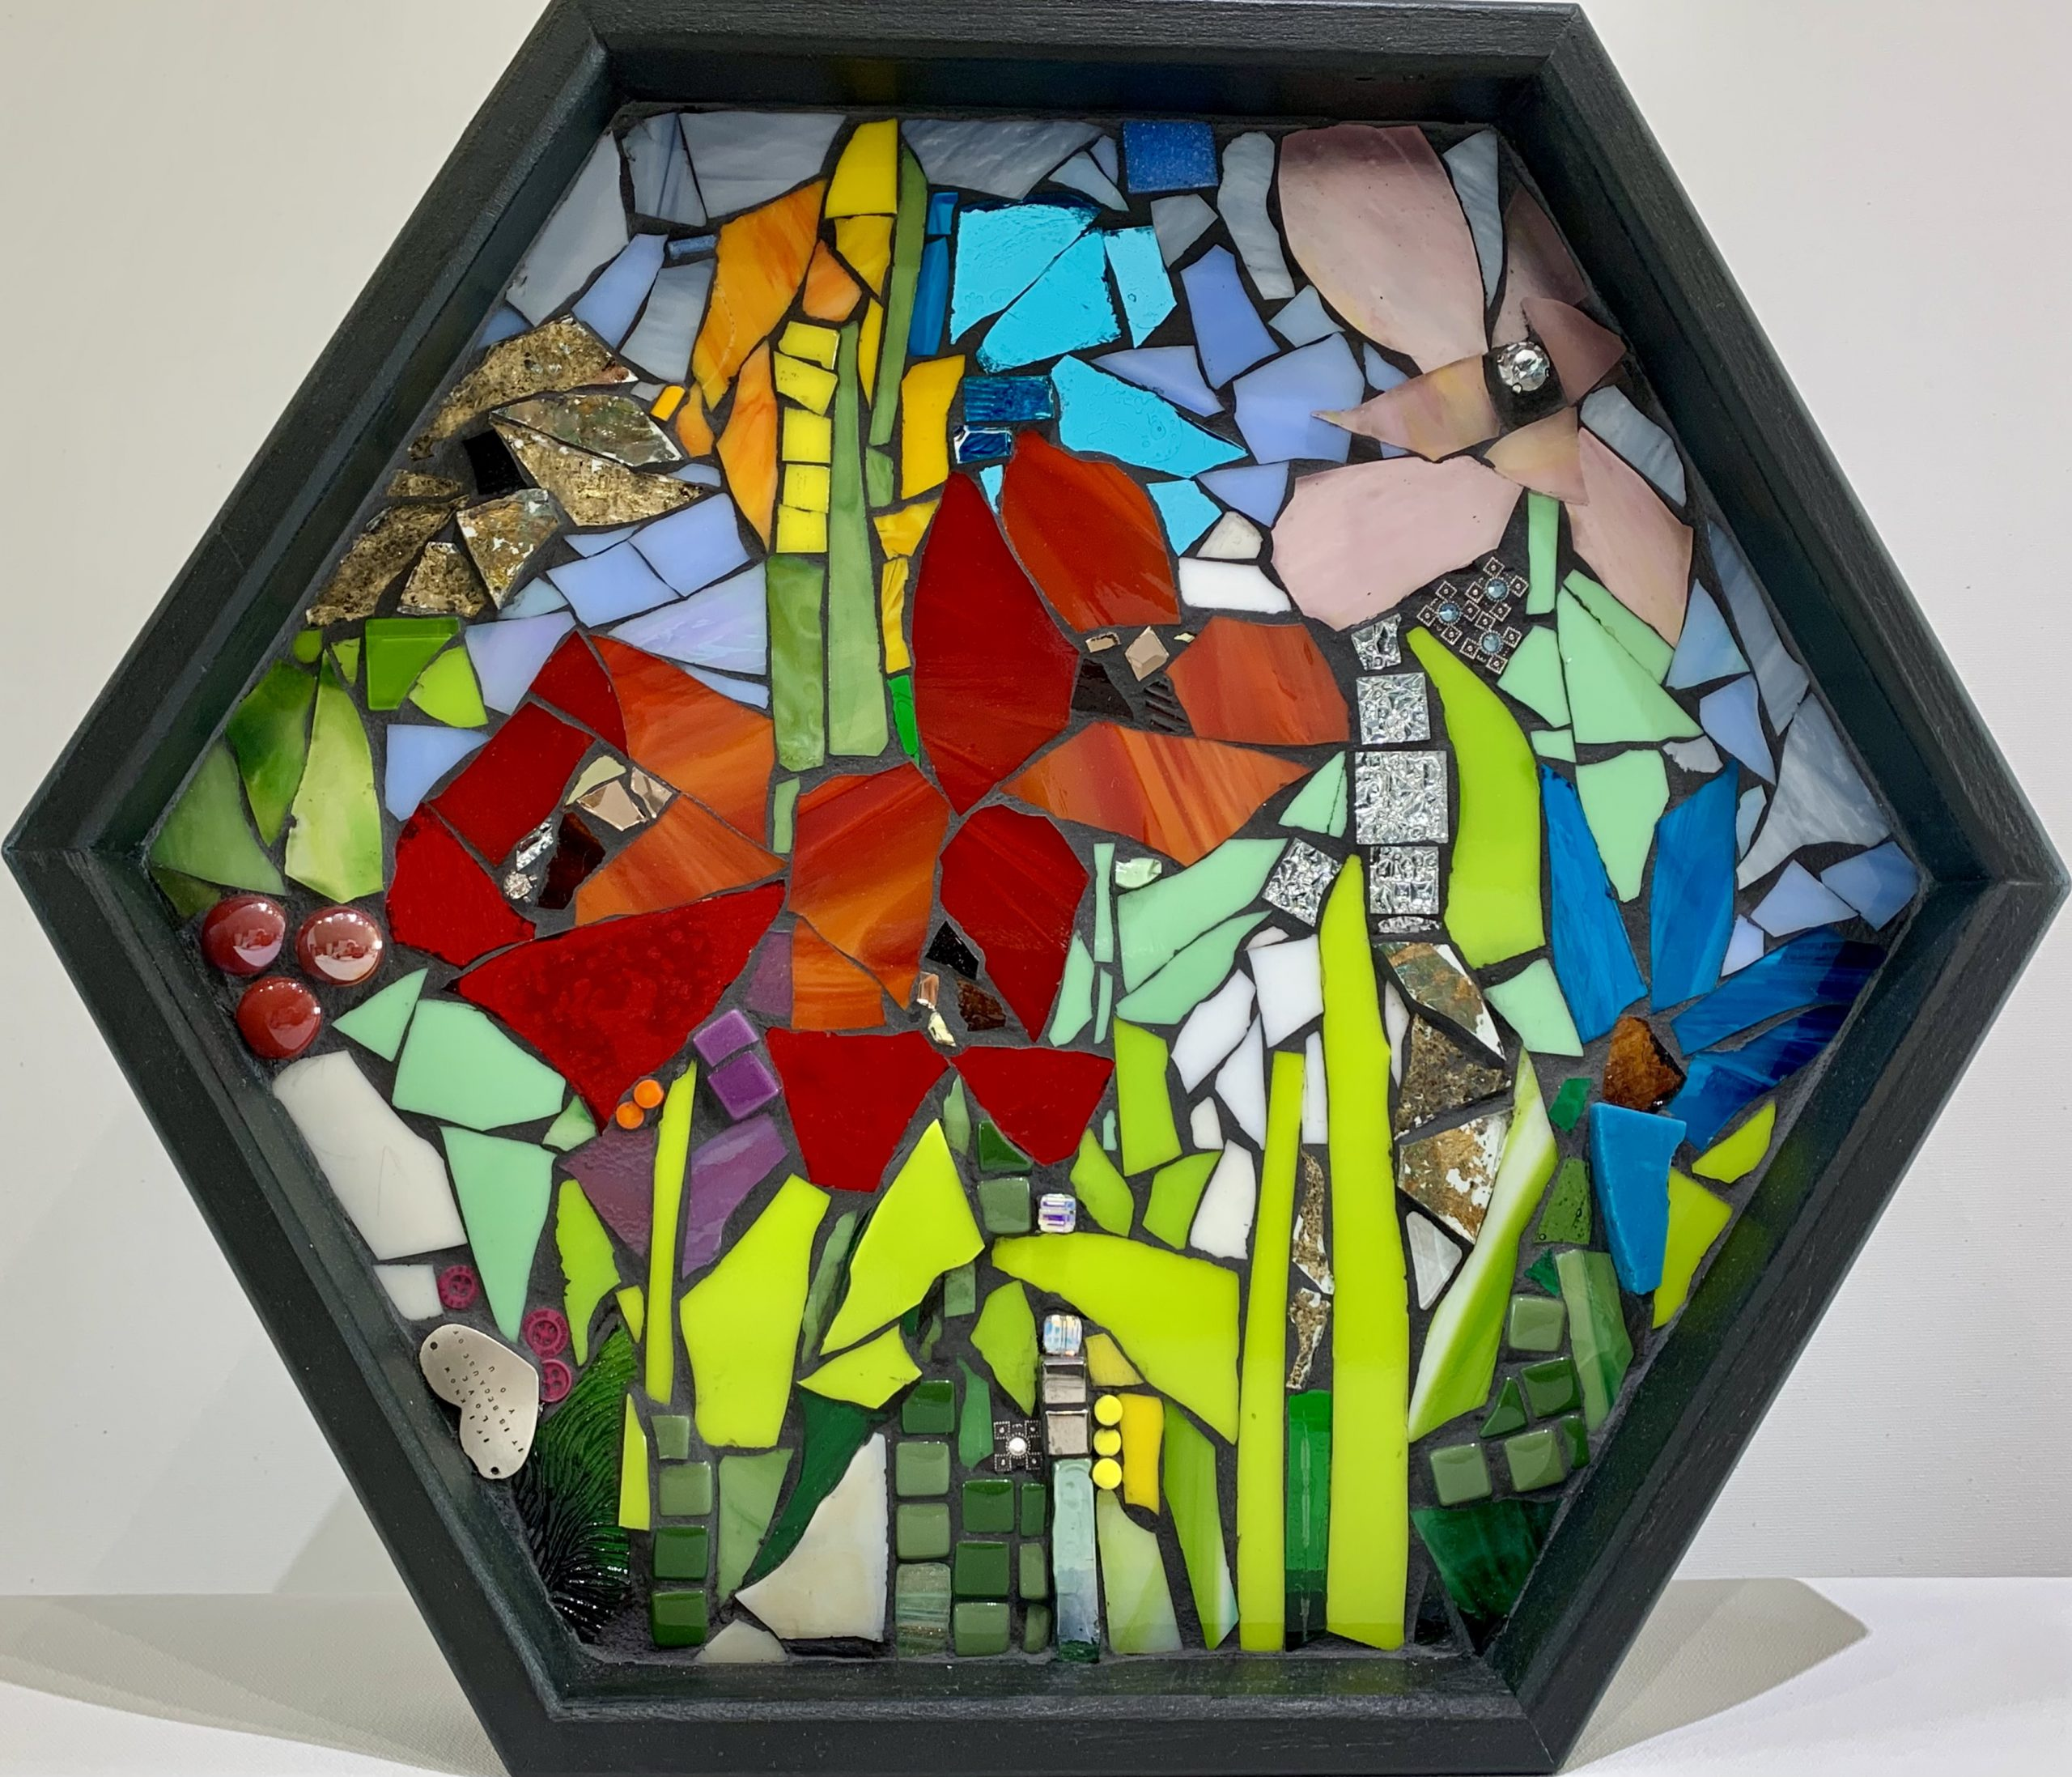 Don't Worry 'bout it, stained glass mosaic by Kimberly Kiel   Effusion Art Gallery + Cast Glass Studio, Invermere BC